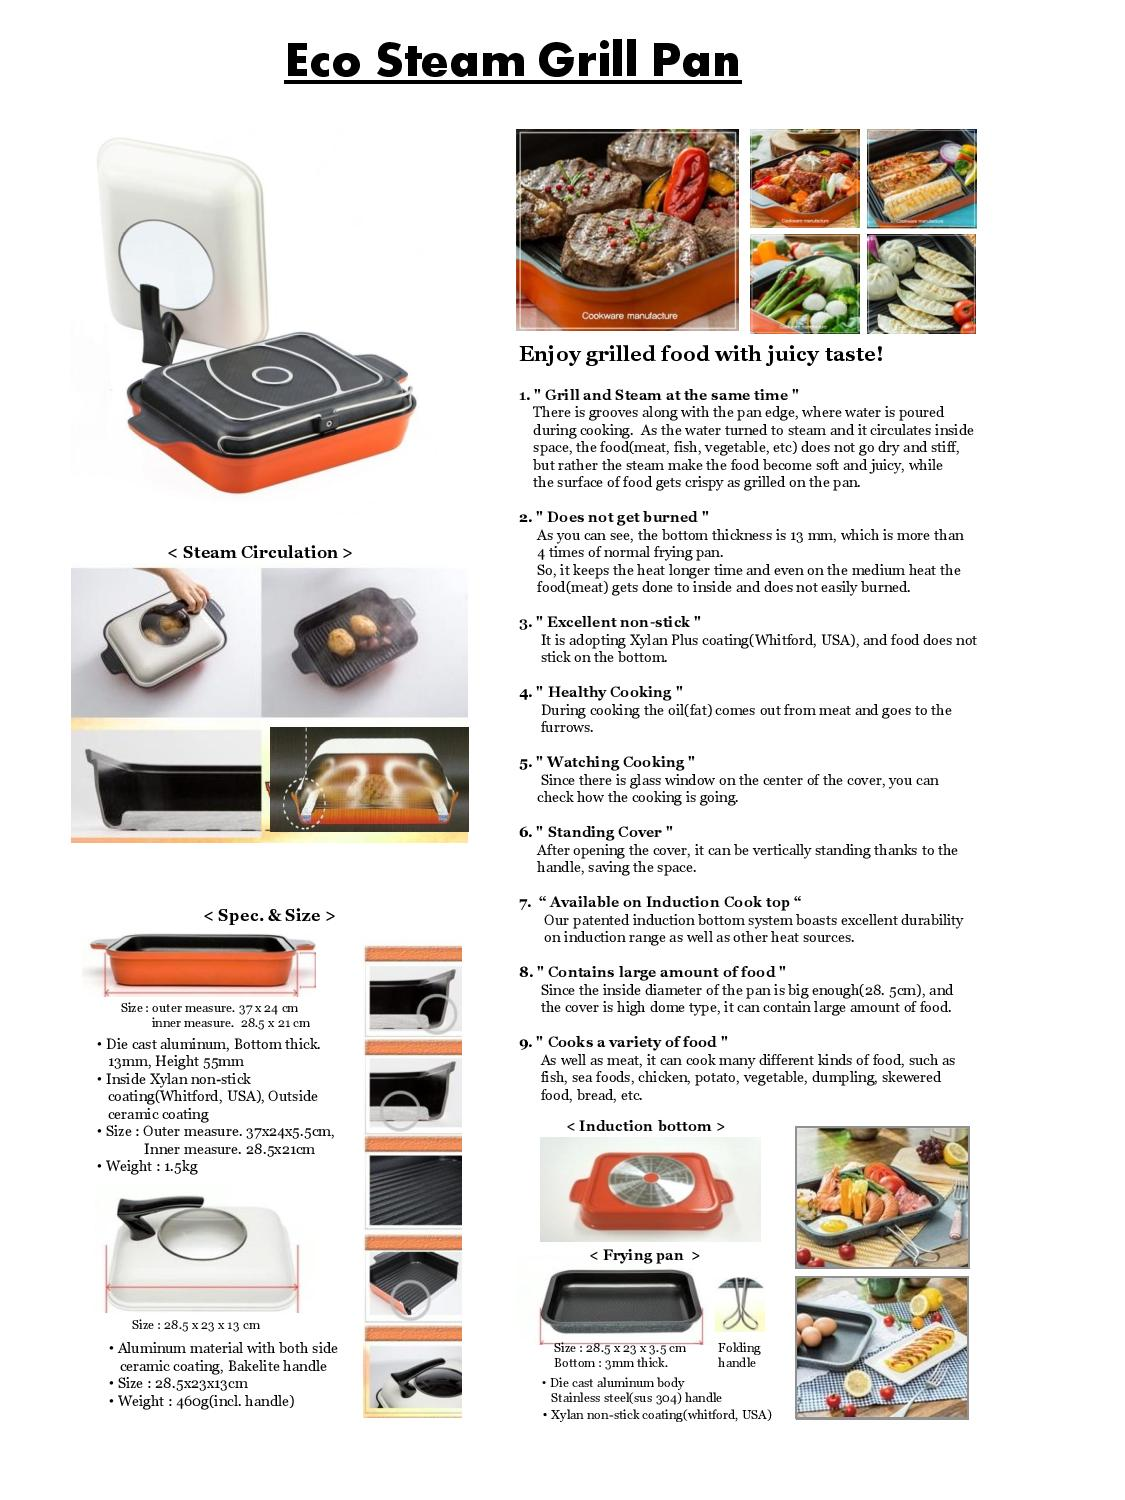 Eco_steam_grill_pan_present.0724-15-page-001.jpg